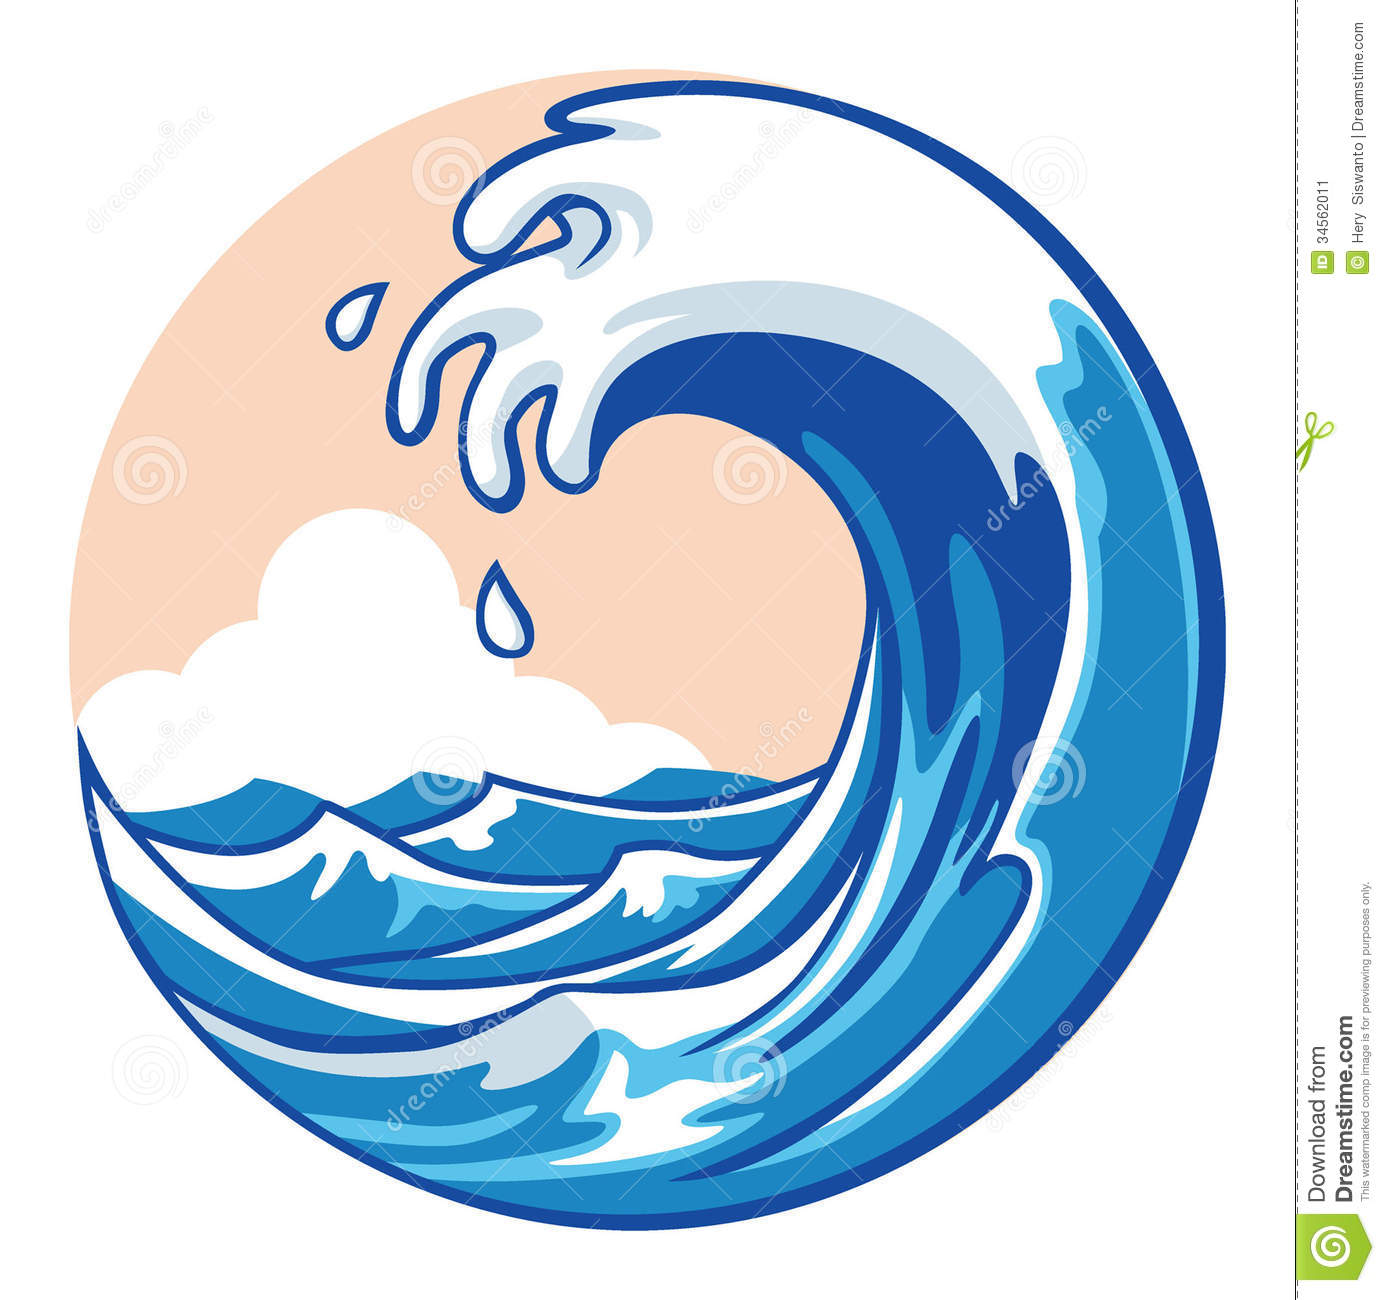 Ocean waves clipart free image library download Wave Clipart | Free download best Wave Clipart on ClipArtMag.com image library download